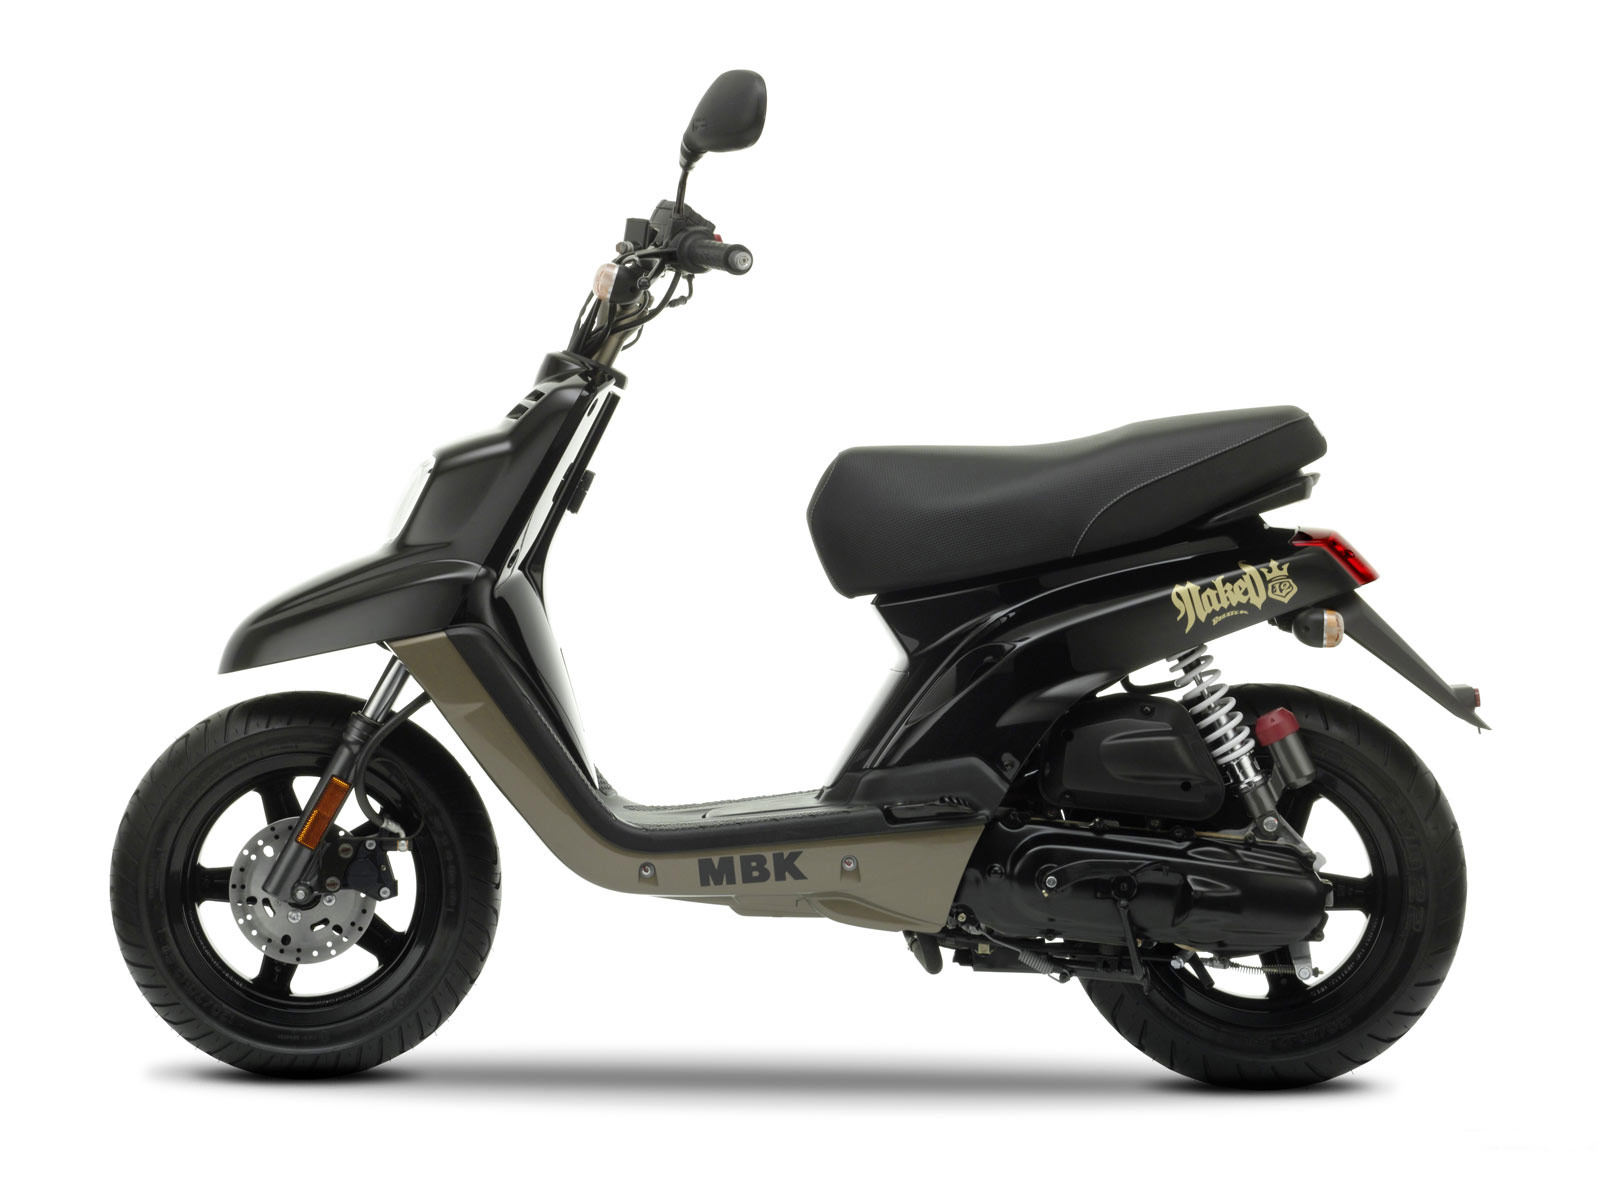 2009 mbk booster 12inch naked scooter pictures specifications. Black Bedroom Furniture Sets. Home Design Ideas